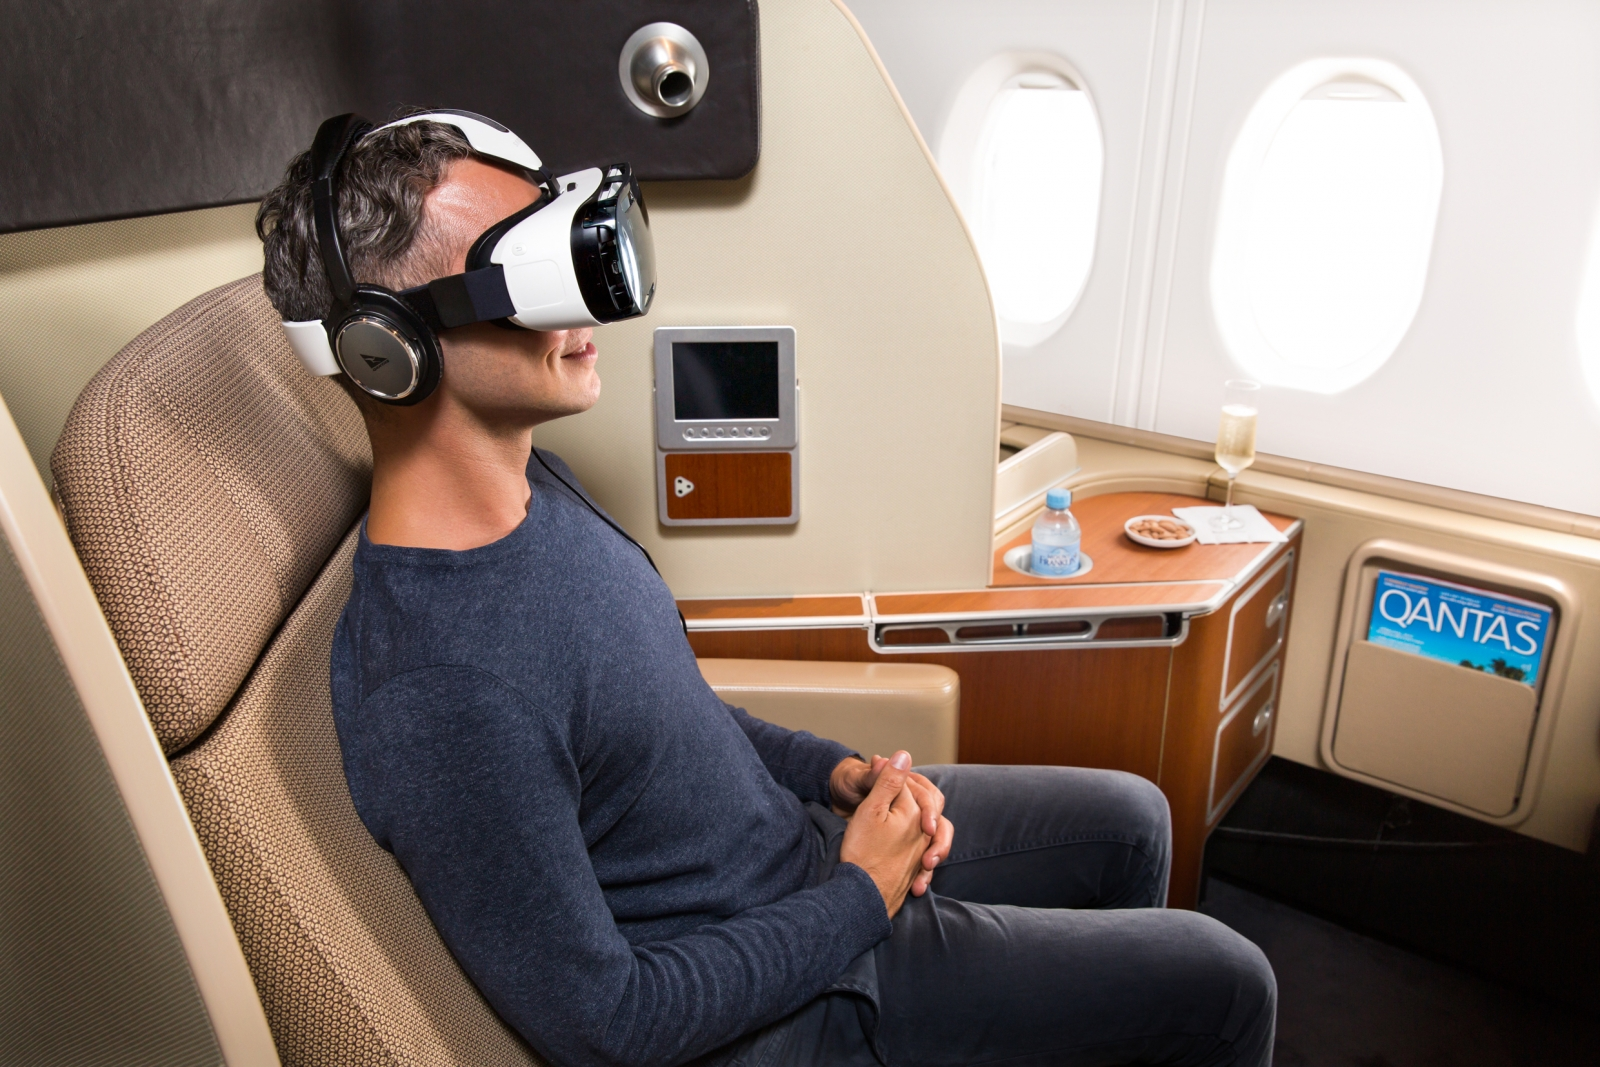 Samsung Gear VR on Qantas flight